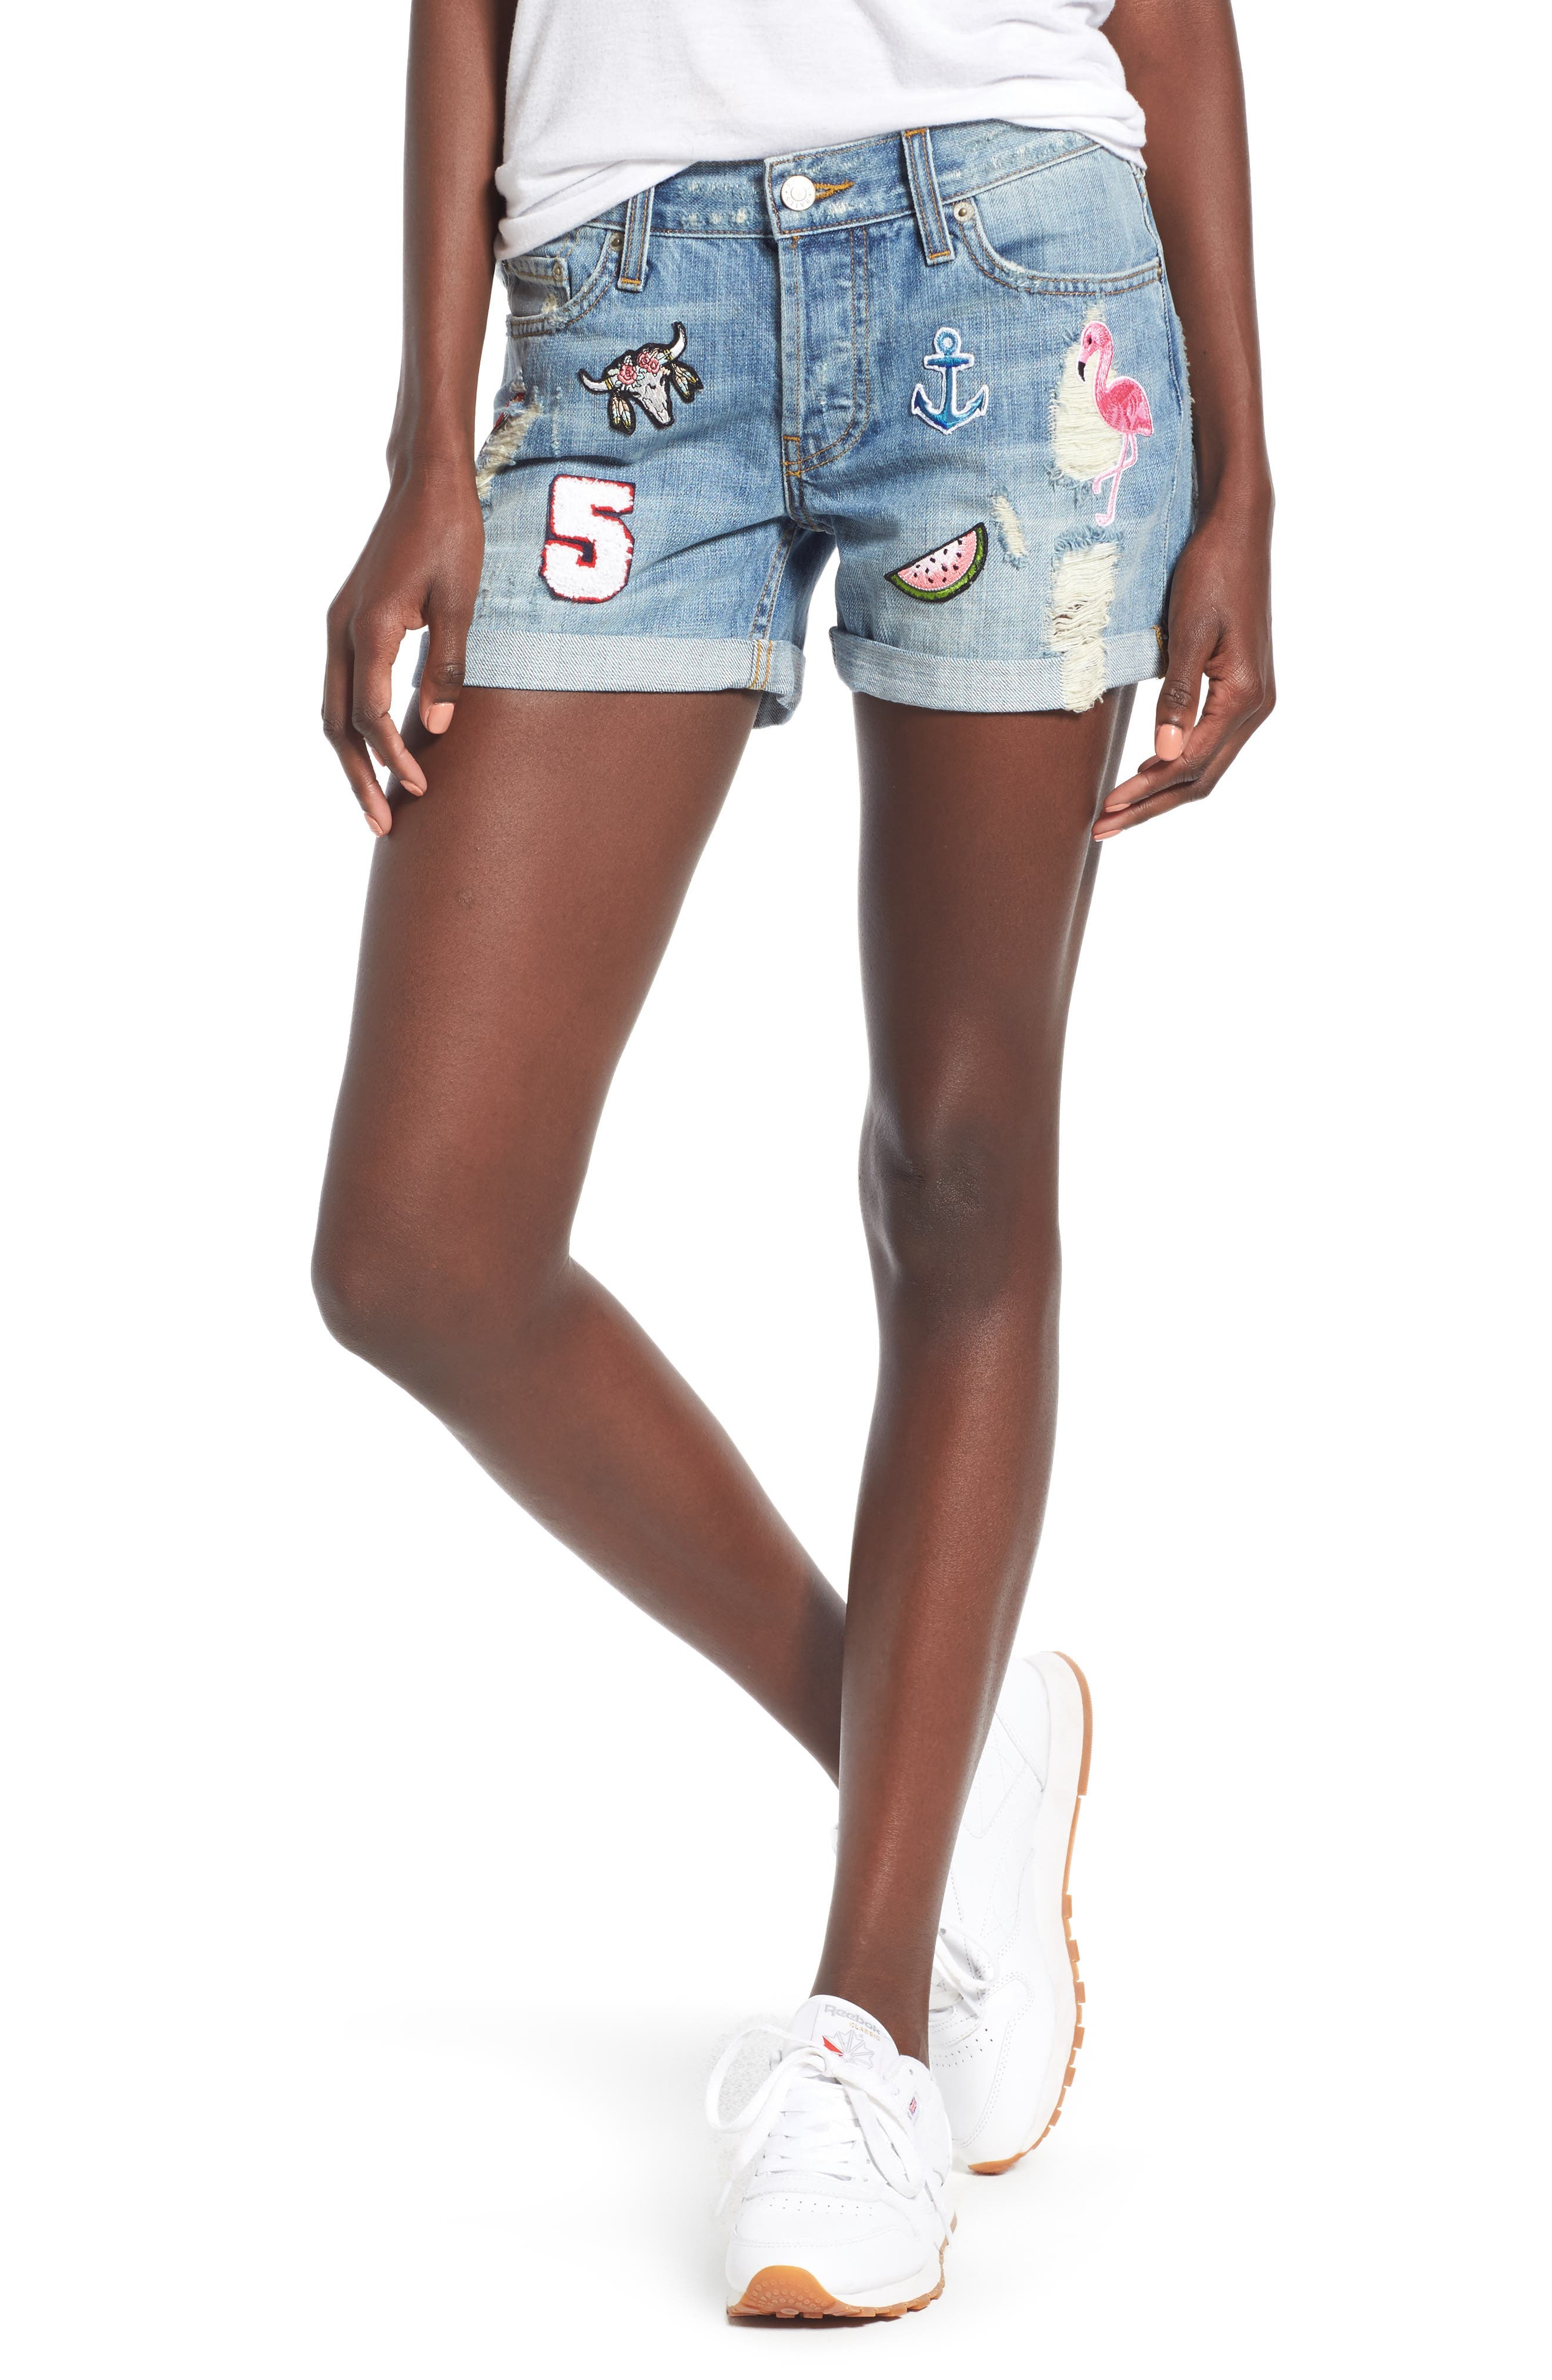 Logan Patch Denim Shorts,                             Main thumbnail 1, color,                             Medium Vintage Wash